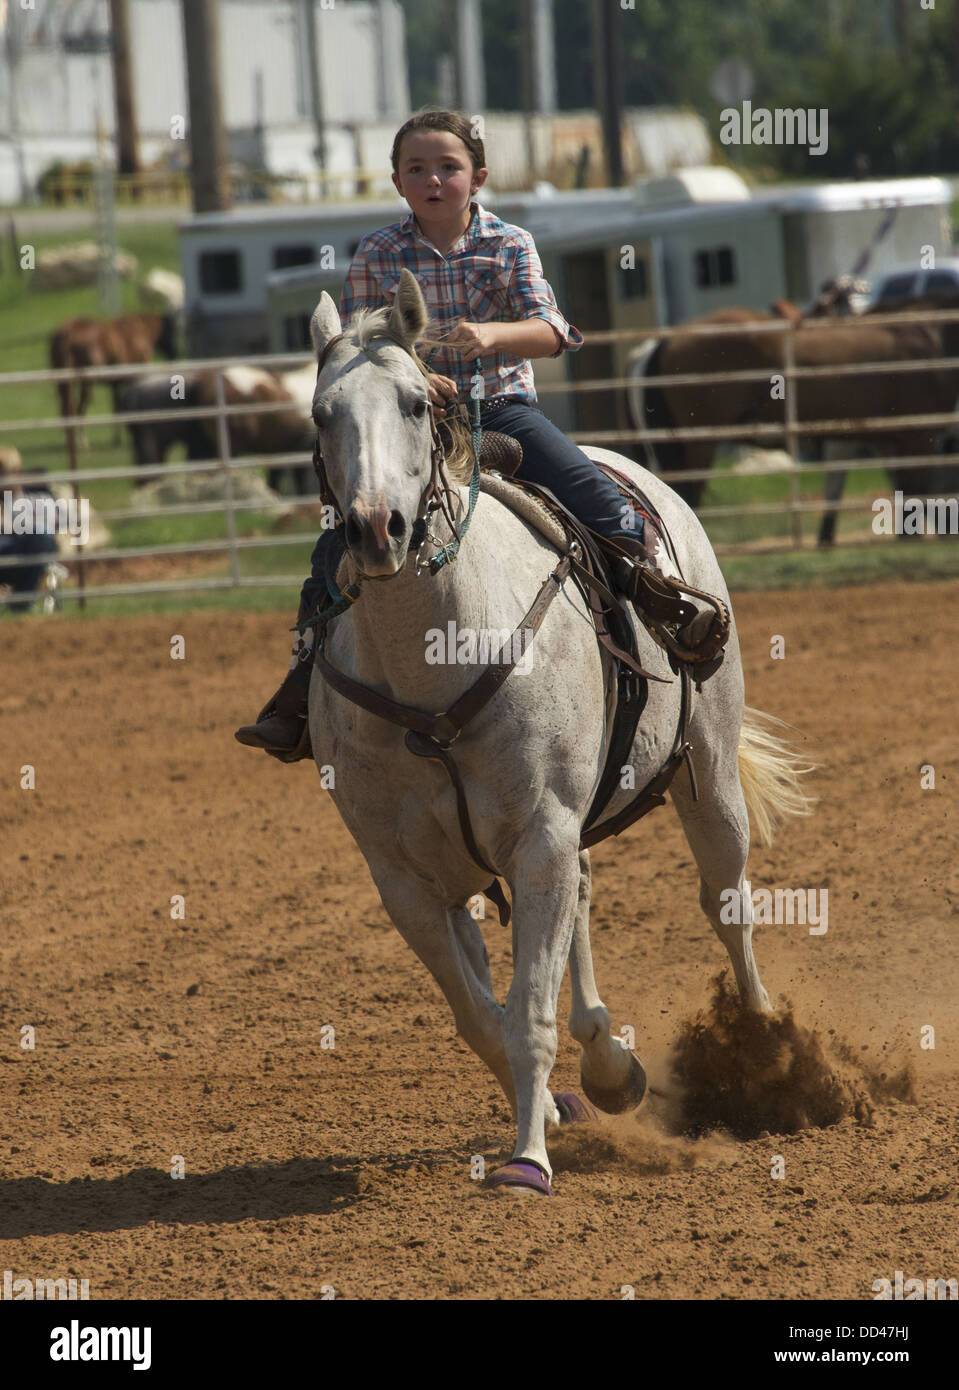 young cowgirl riding competition in Ada, Oklahoma - Stock Image